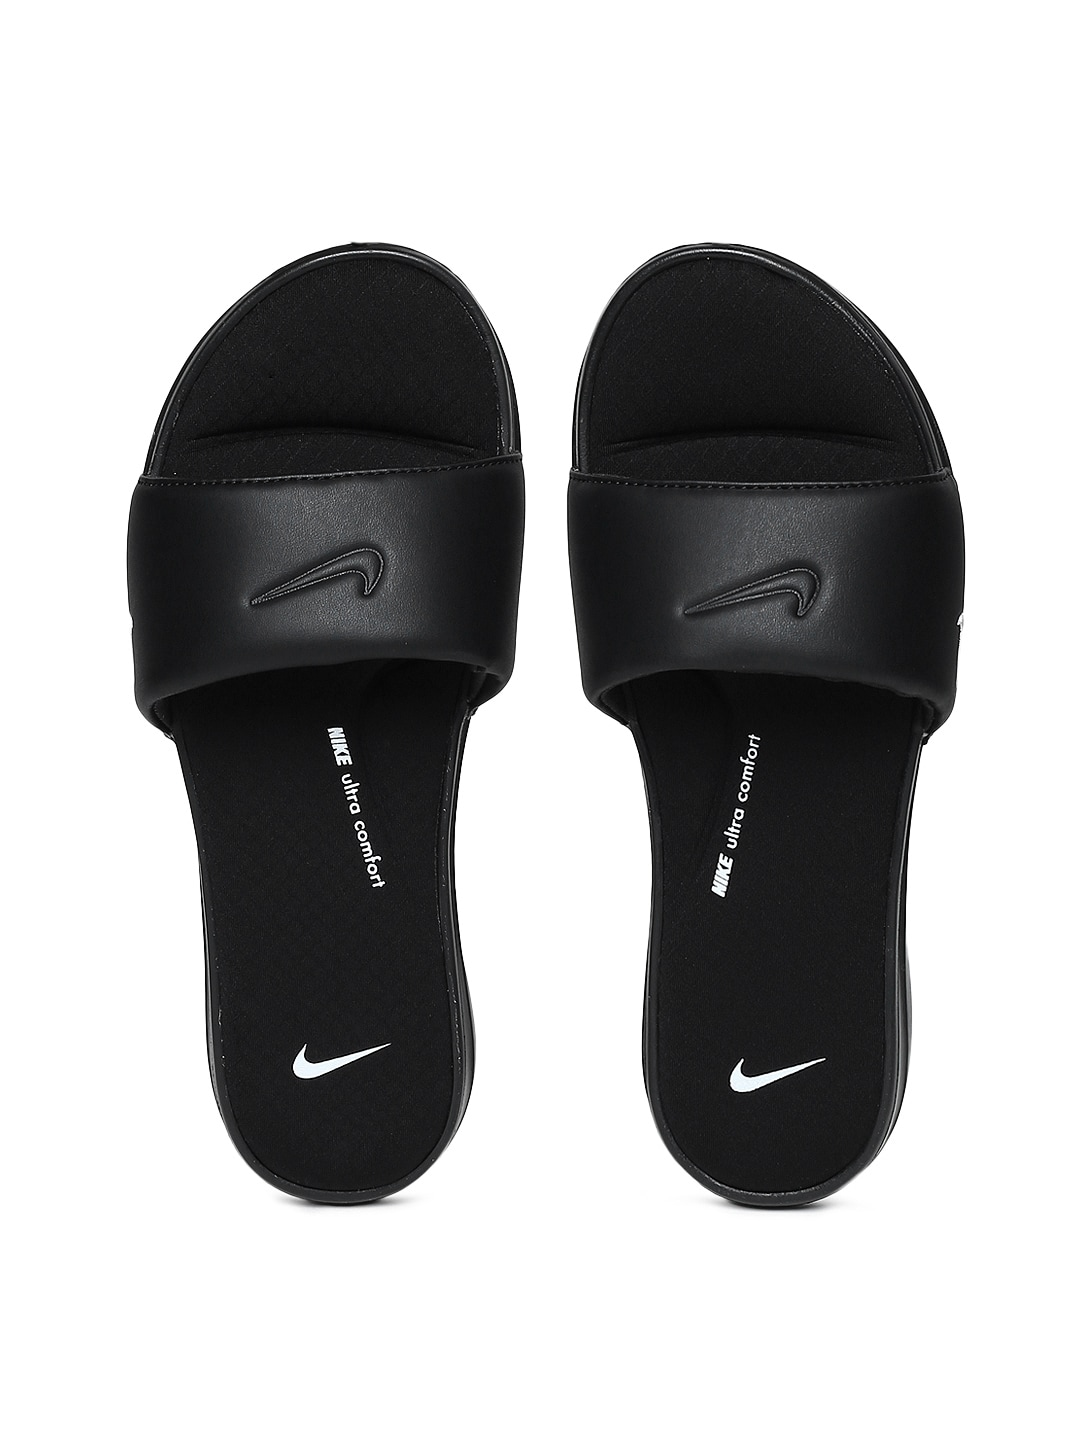 772619651 Nike Flip Flops Bra Sandals - Buy Nike Flip Flops Bra Sandals online in  India